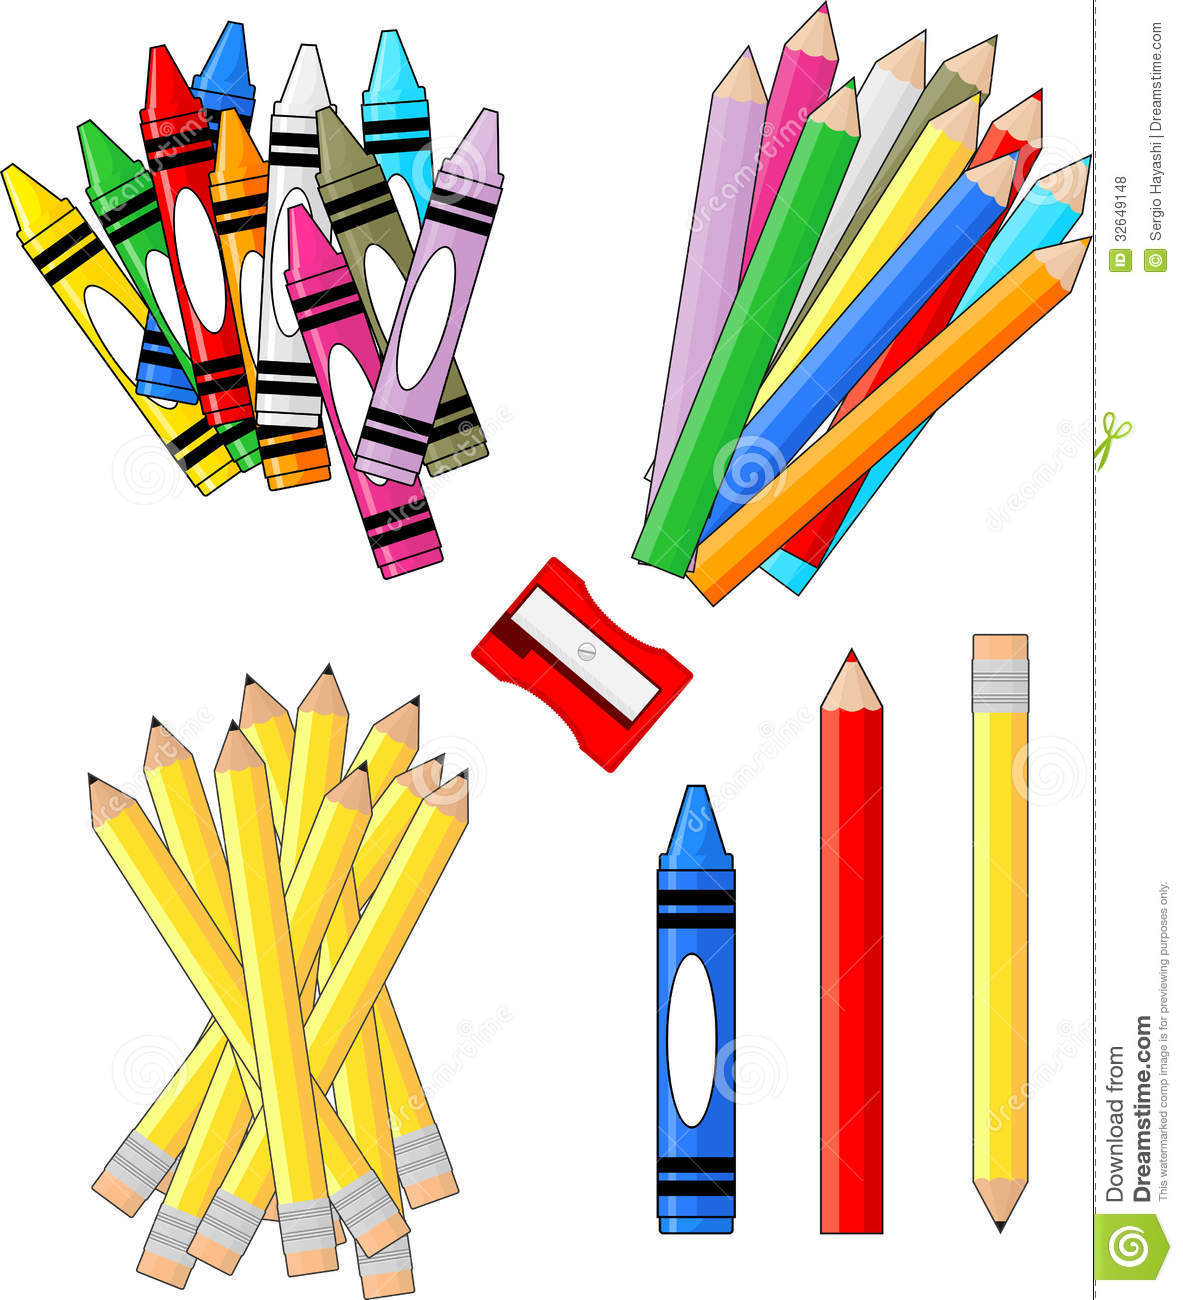 School Supplies Clipart Free Clipart Pan-School Supplies Clipart Free Clipart Panda Free Clipart Images-15